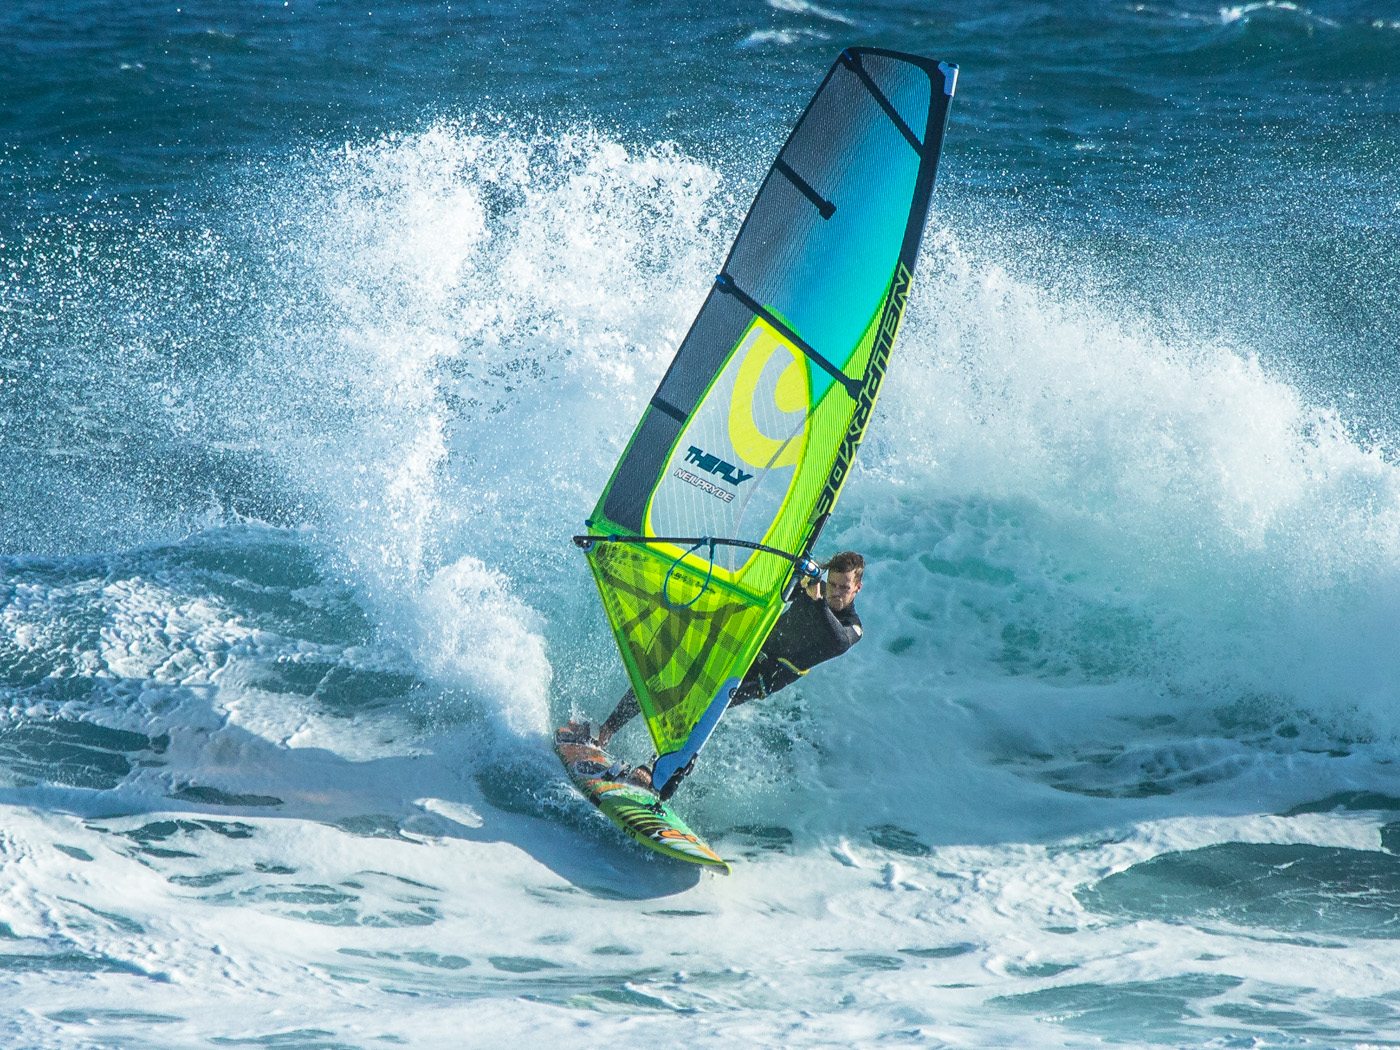 winter windsurfing at woolamai phillip island with whales